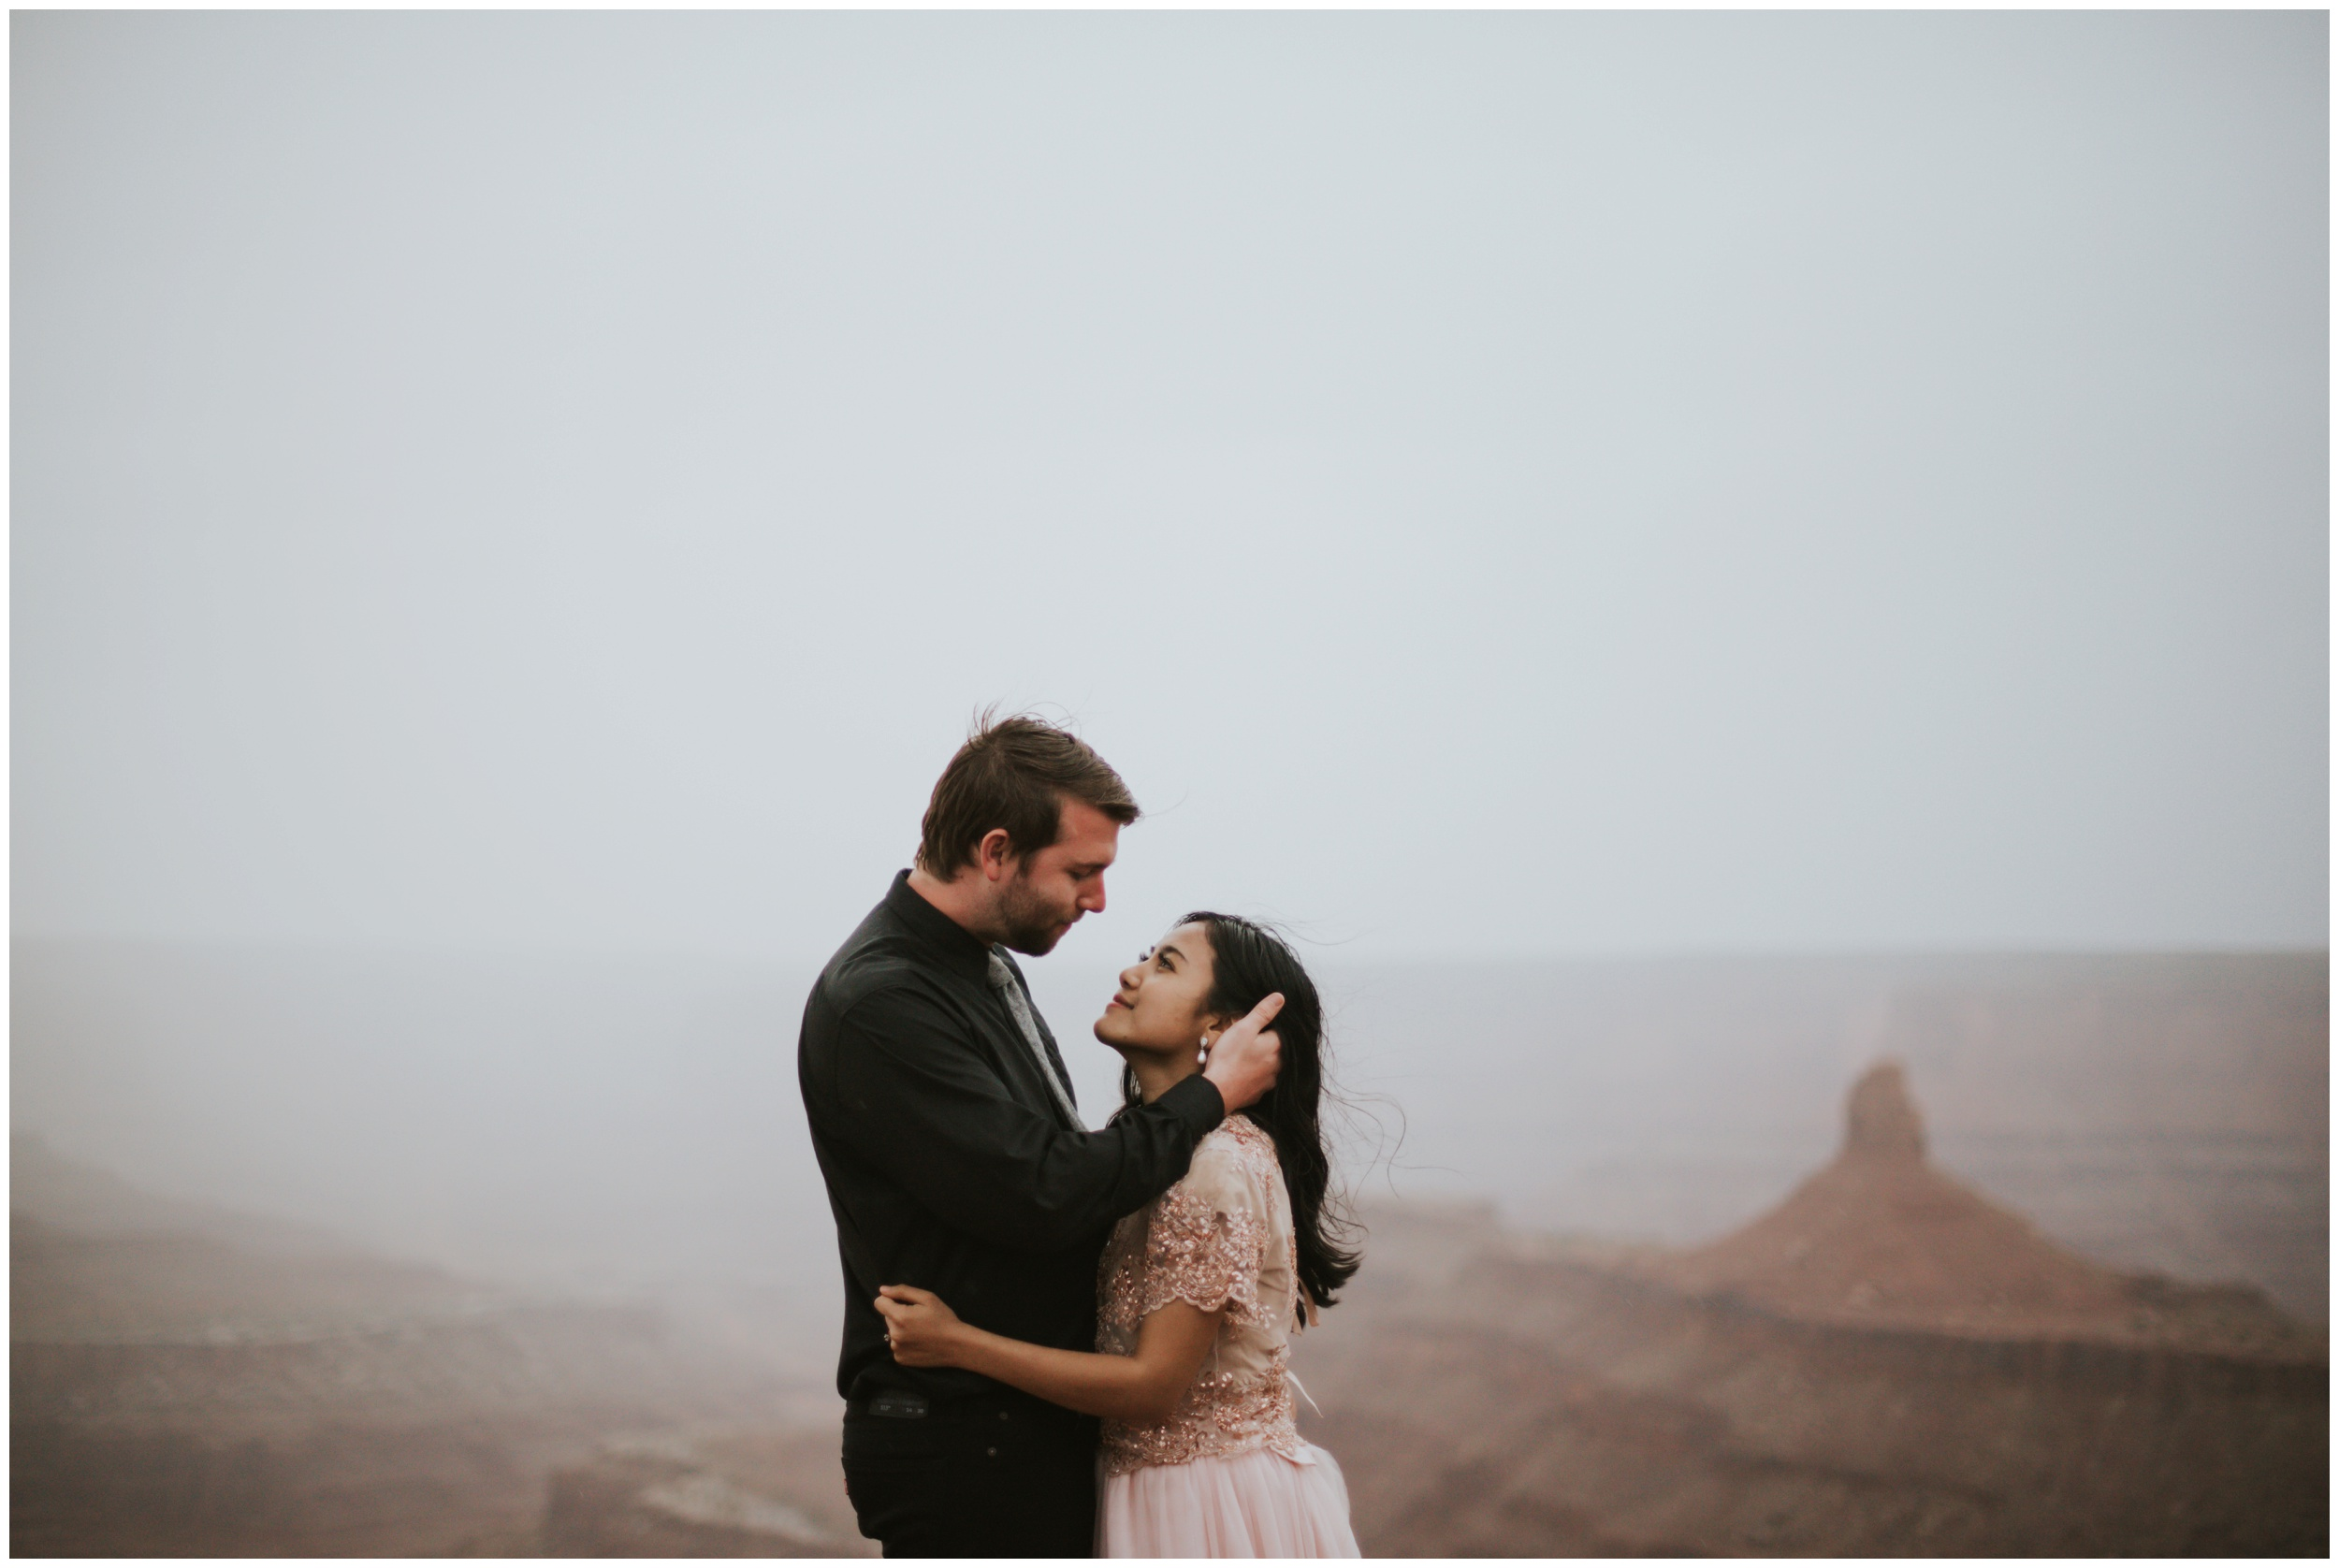 couple getting ready to kiss, looking at each other sweetly hand in hair | Elopement Photographer www.riversandroadsphotography.com